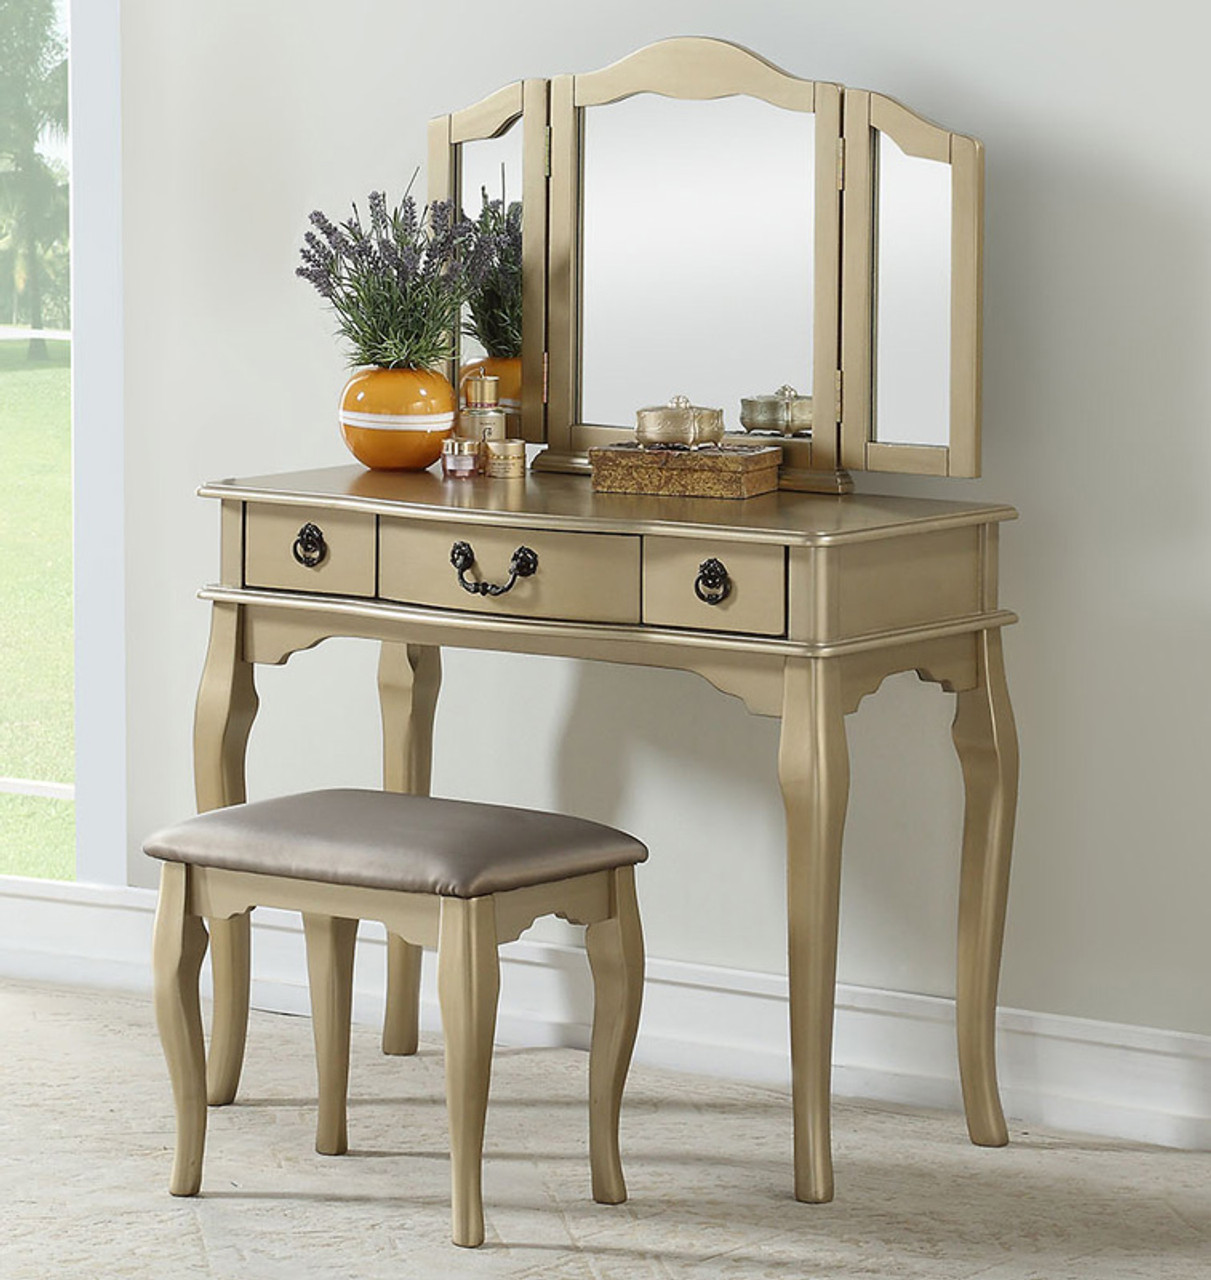 Stupendous Miranda Vanity Table With Bench Mirror Gmtry Best Dining Table And Chair Ideas Images Gmtryco